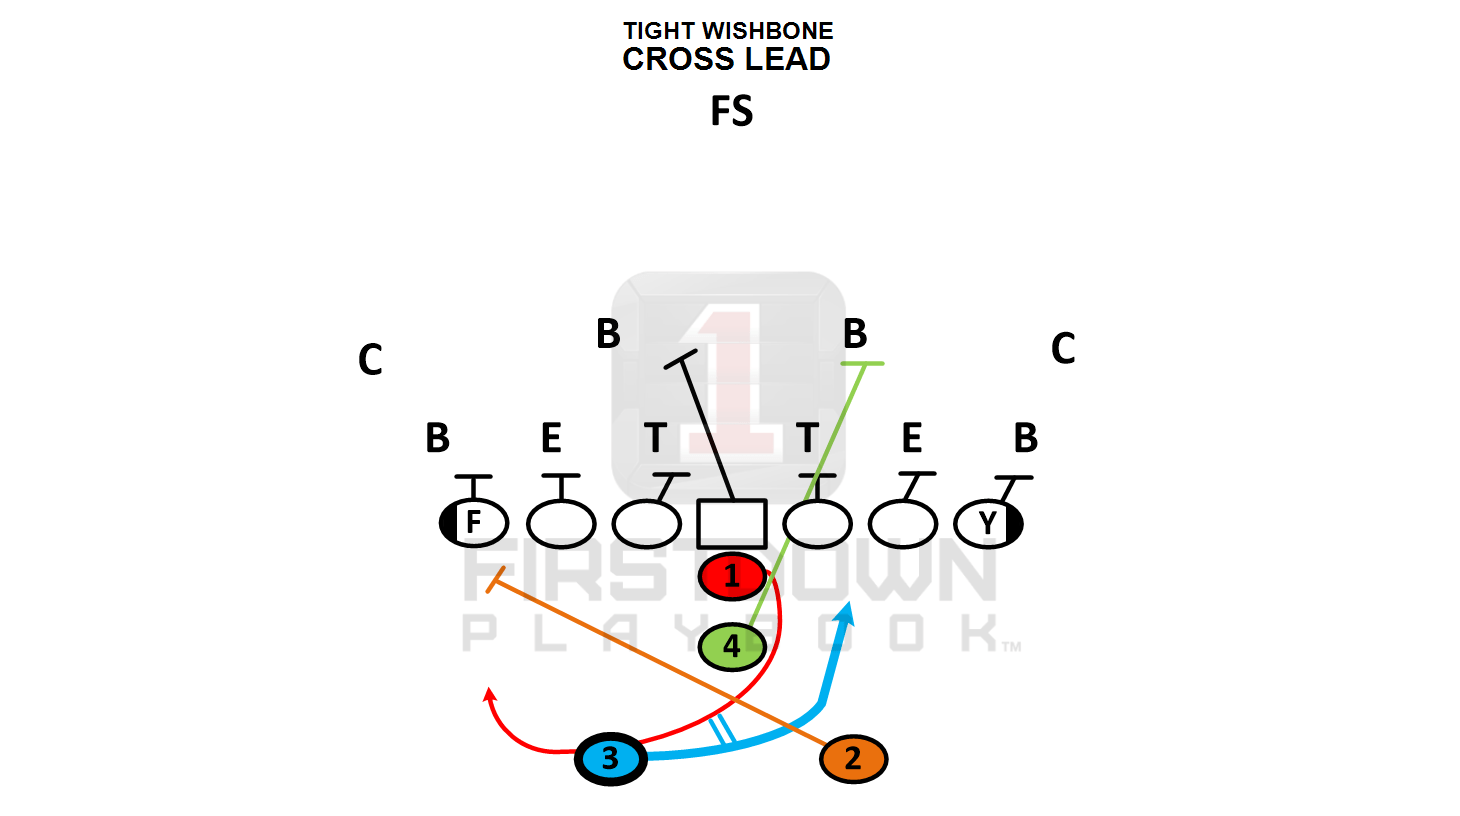 FirstDown PlayBook Youth Football Tight Wishbone formation